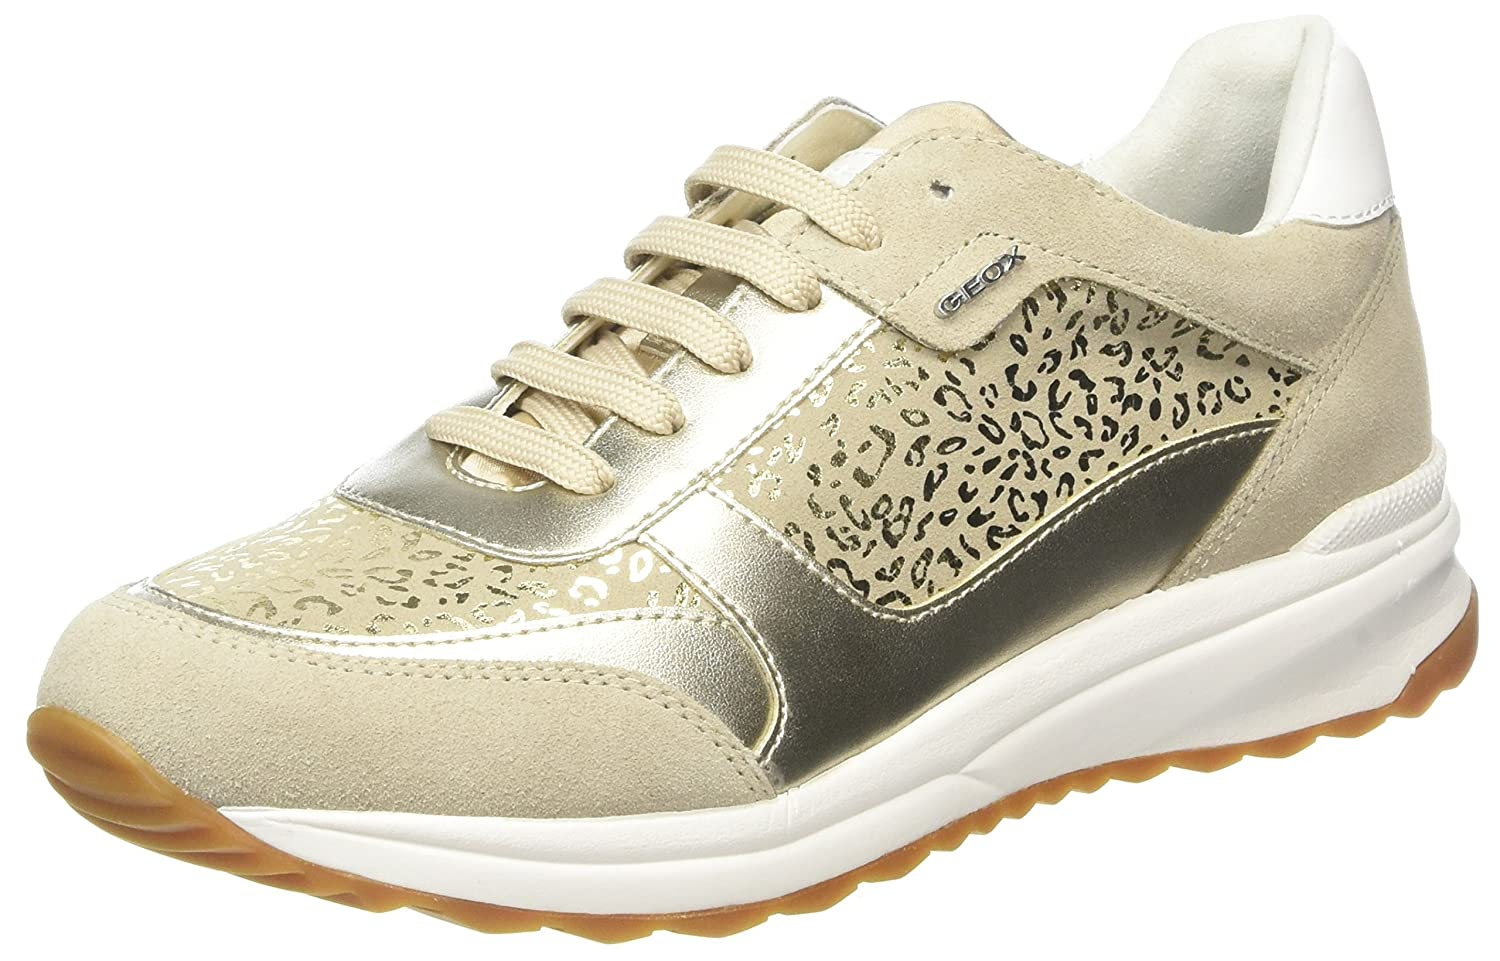 Geox D Airell C, Zapatillas para Mujer 36 EU Beige (Lt Taupe)